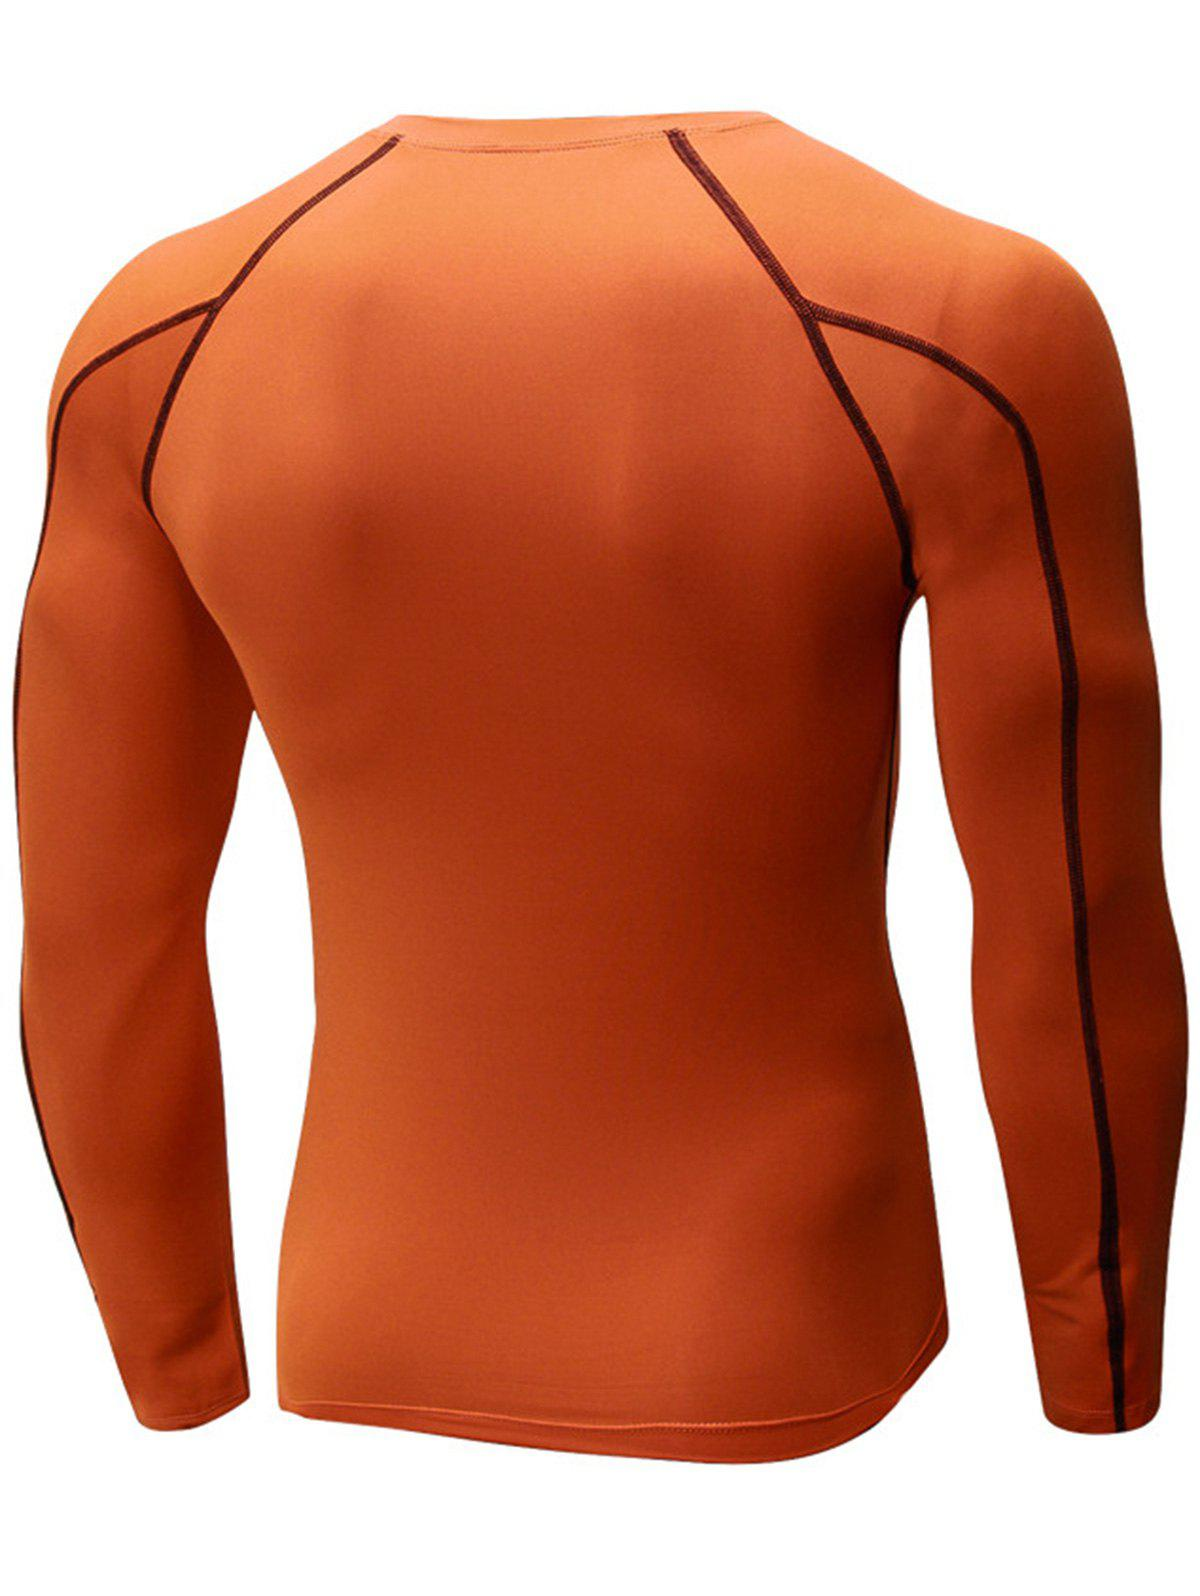 Stretchy Quick Dry Suture Long Sleeve T-shirt - JACINTH XL